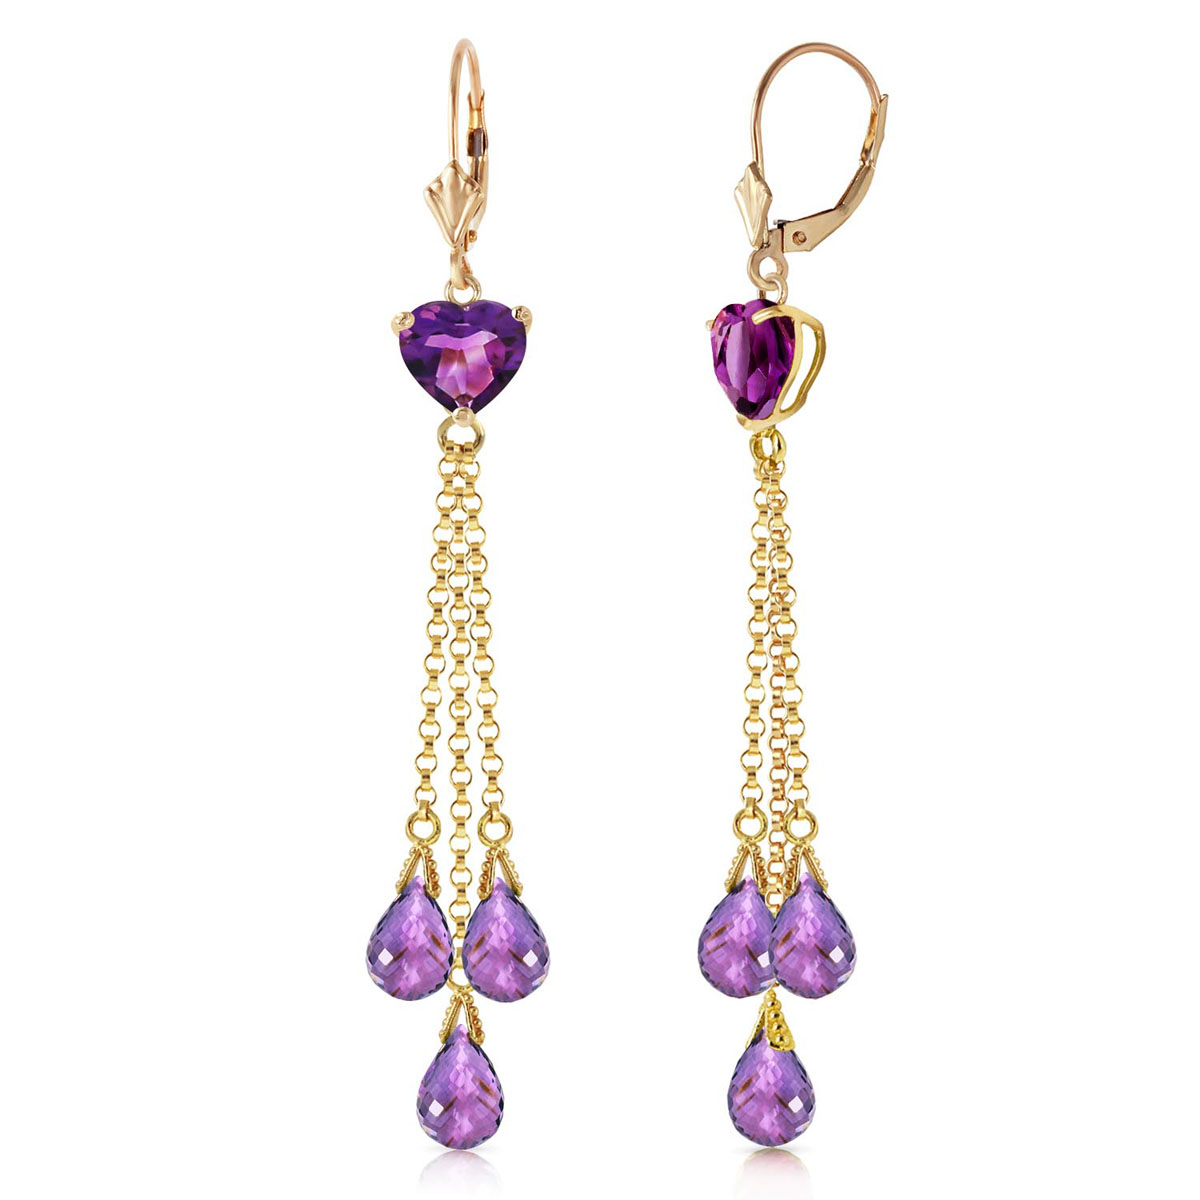 Amethyst Vestige Drop Earrings 9.5 ctw in 9ct Gold